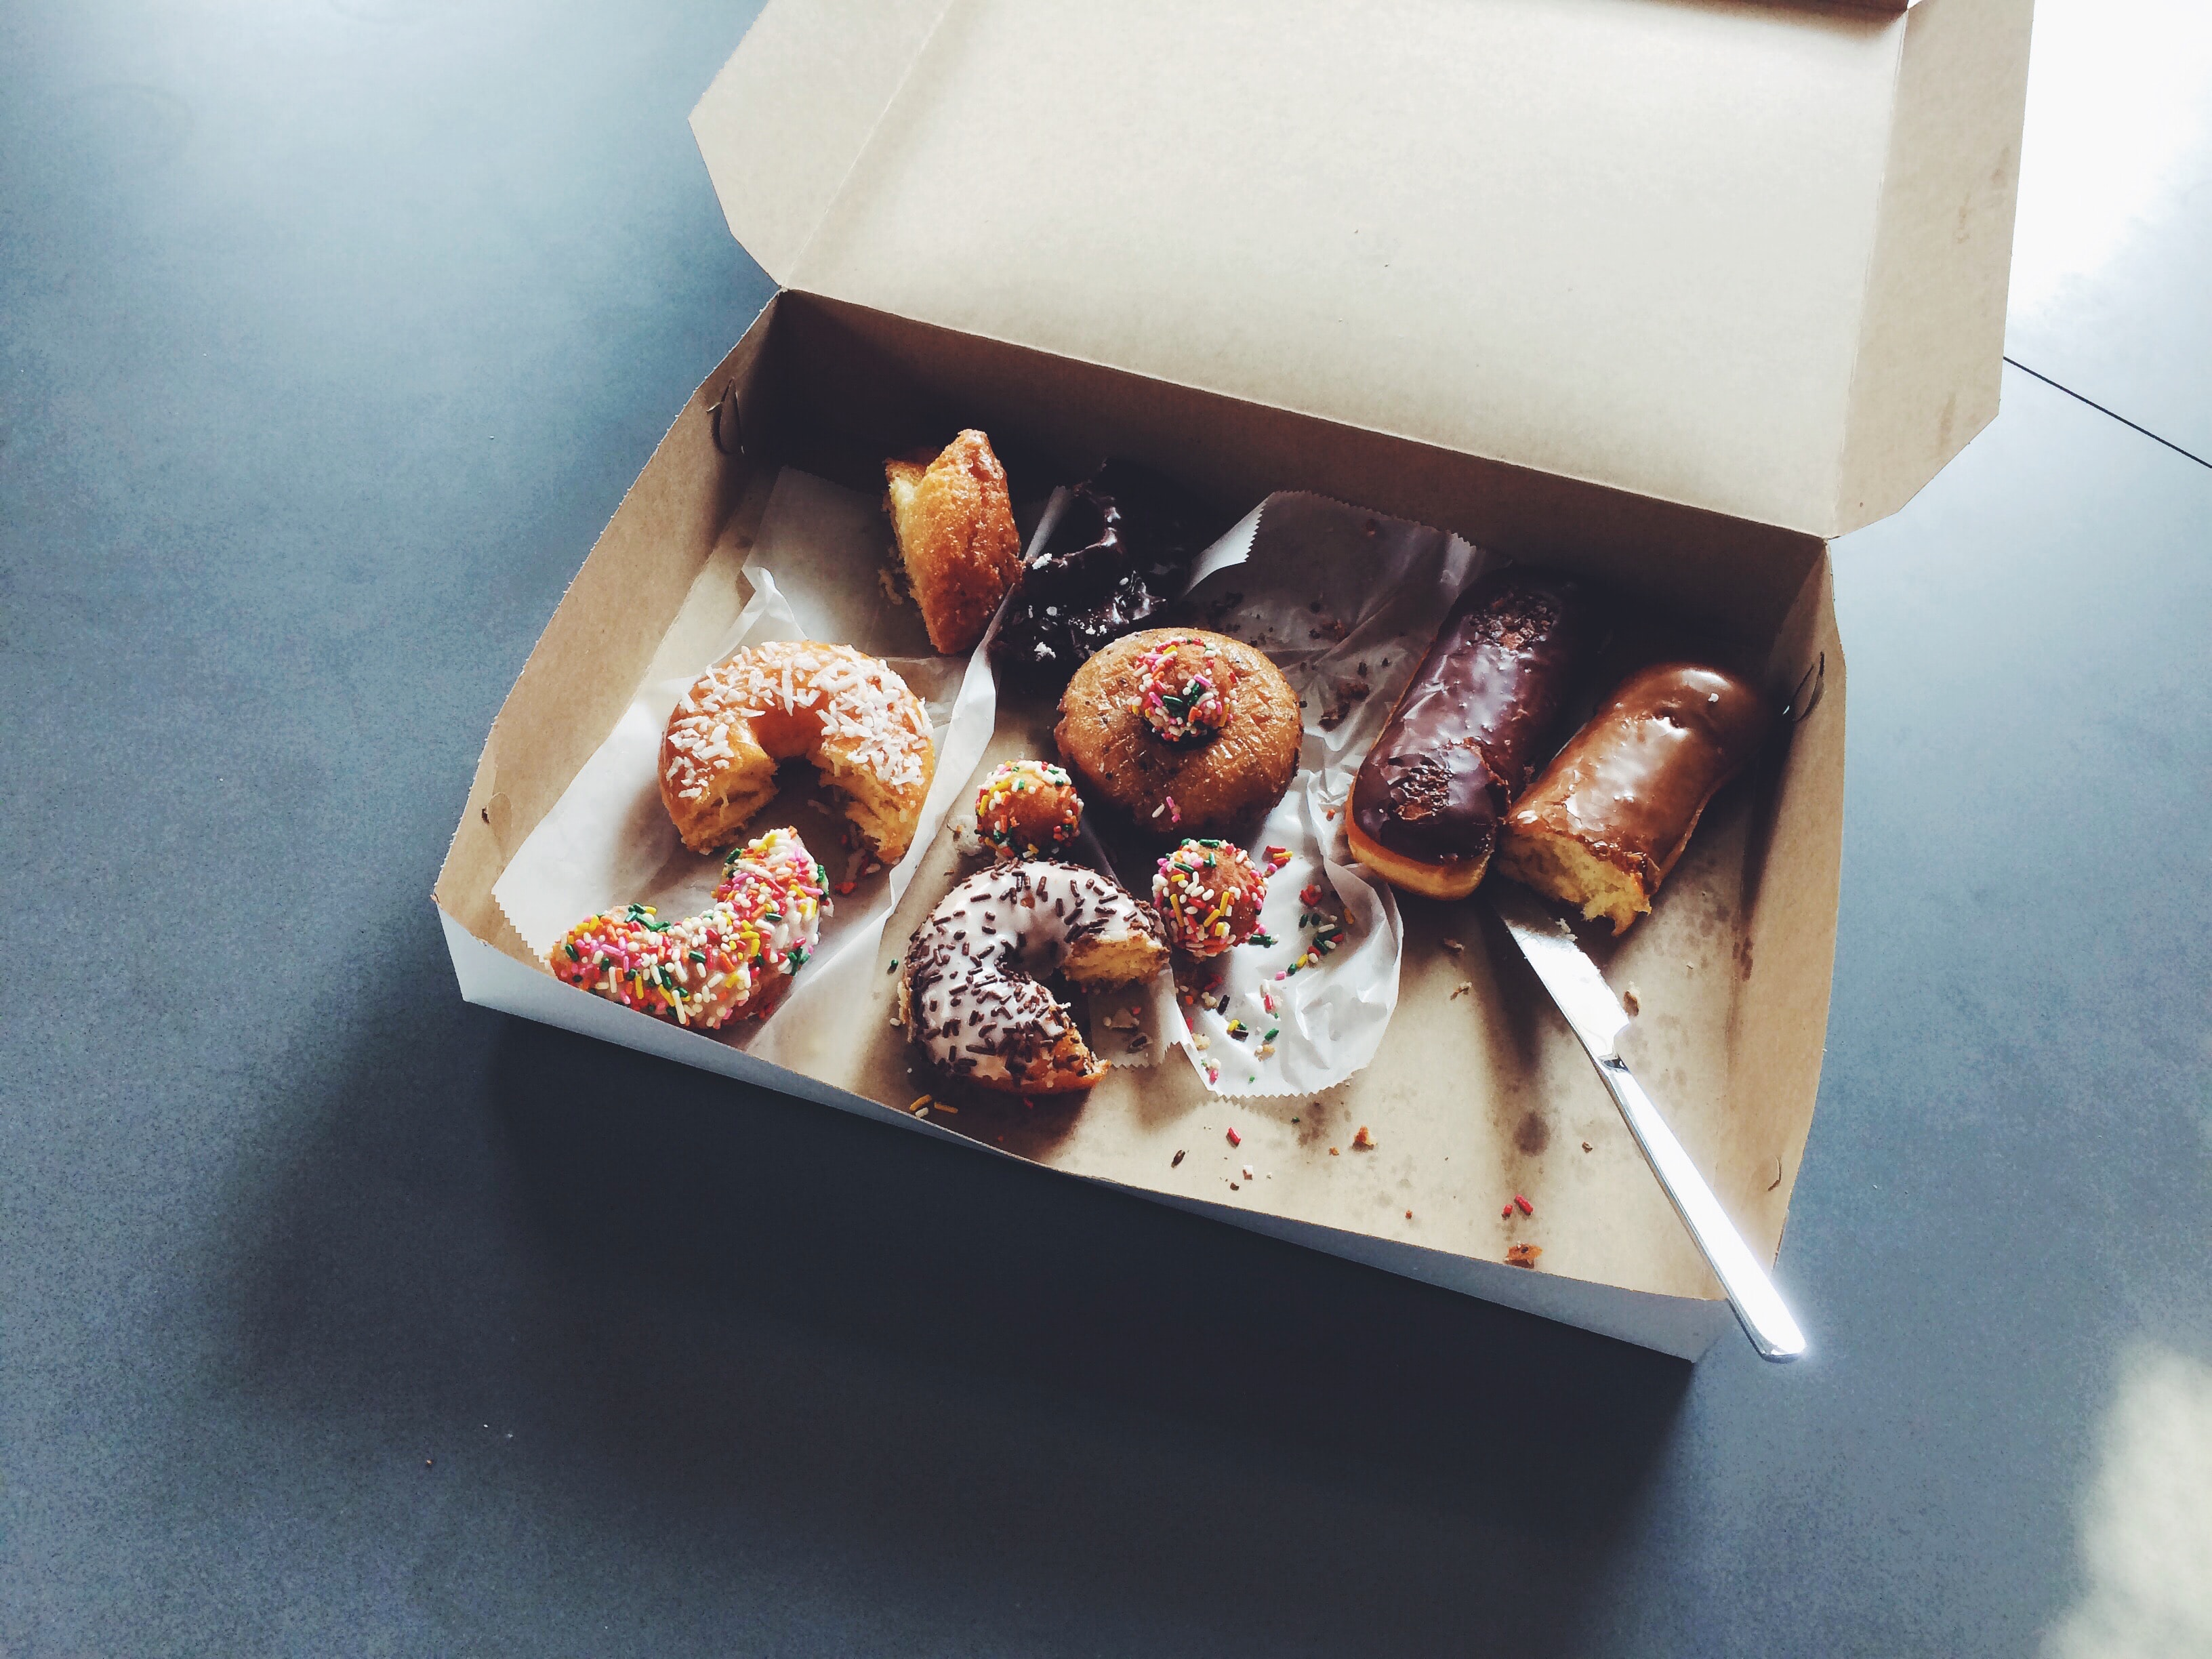 Box of half eaten donuts on an office break room table